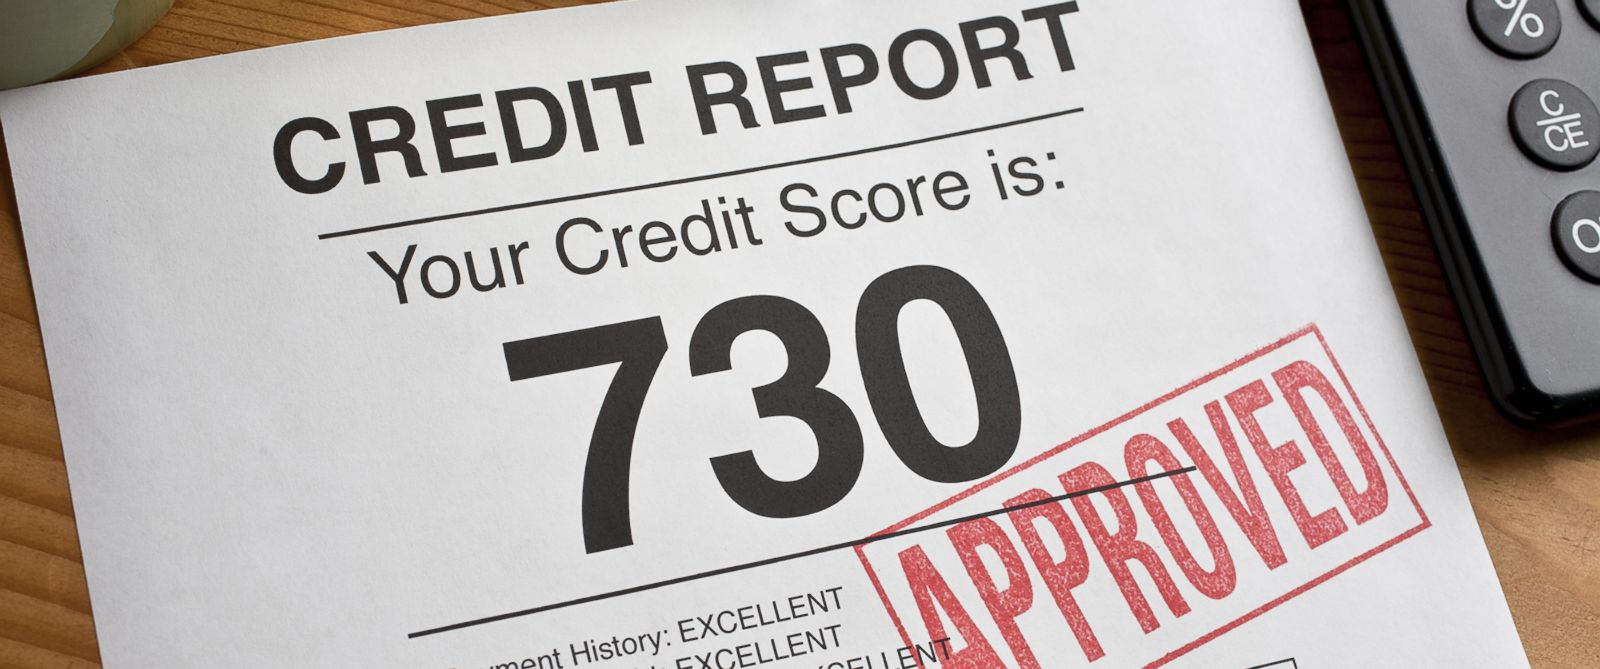 PHOTO: Approve is rubber stamped on a credit report with a high score.